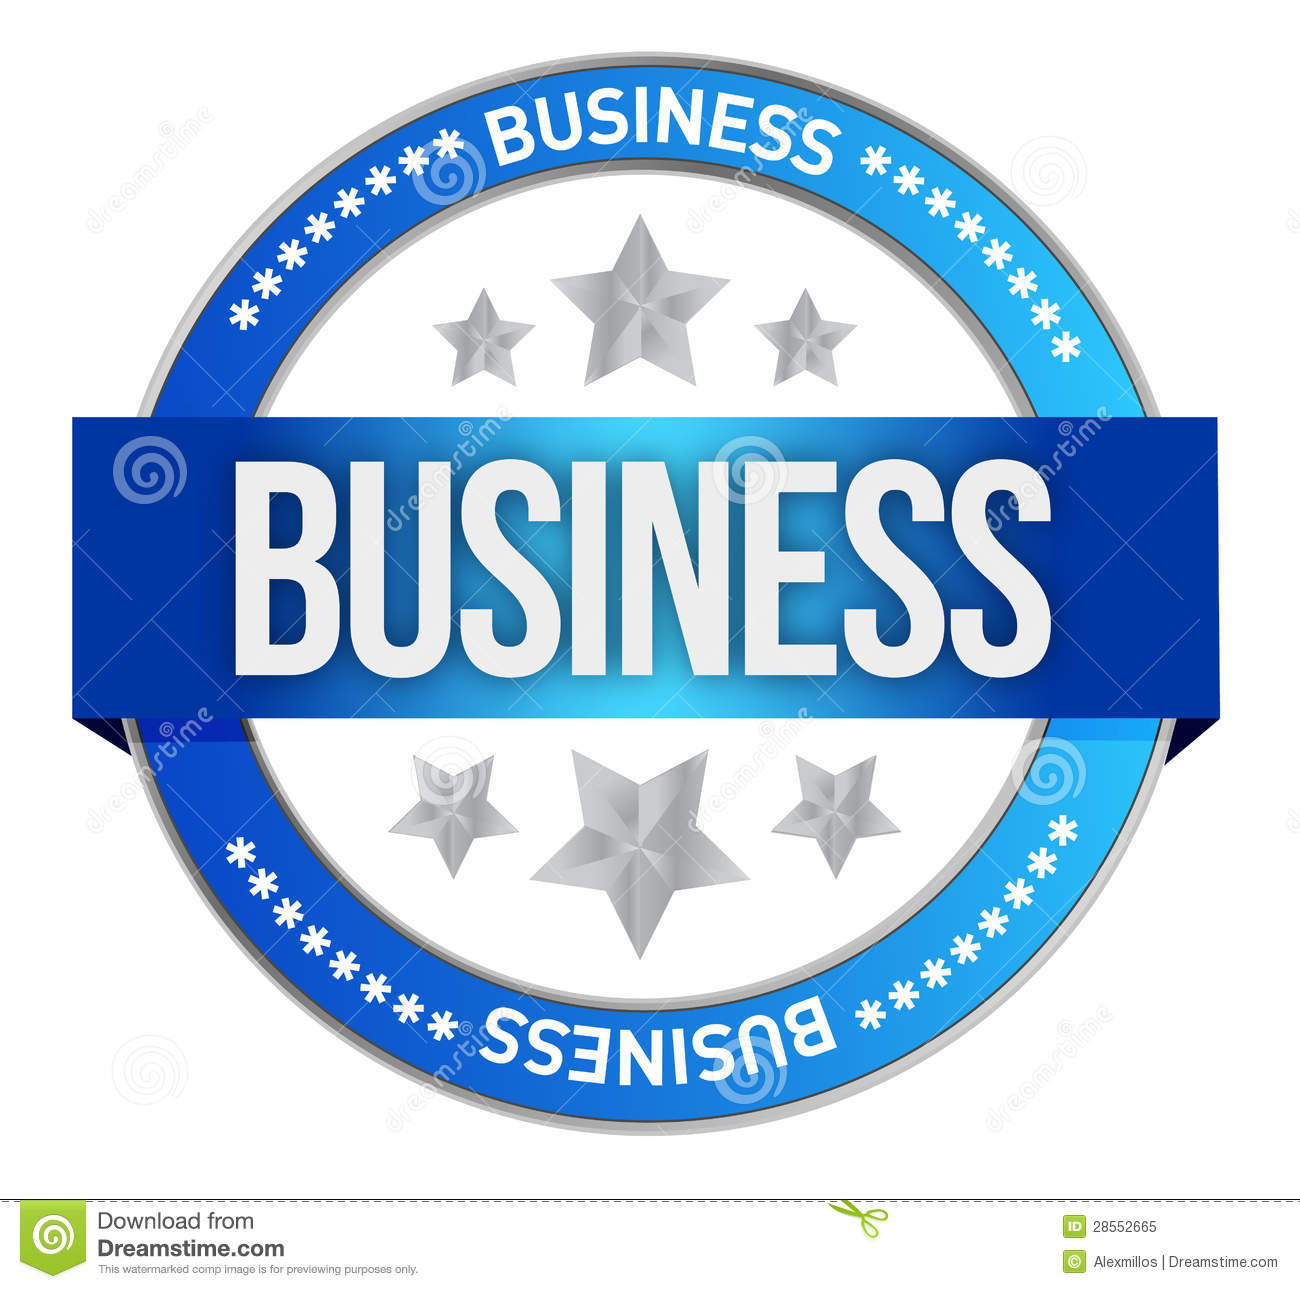 Intellectual Property Clip Art: Business Seal Royalty Free Stock Photo